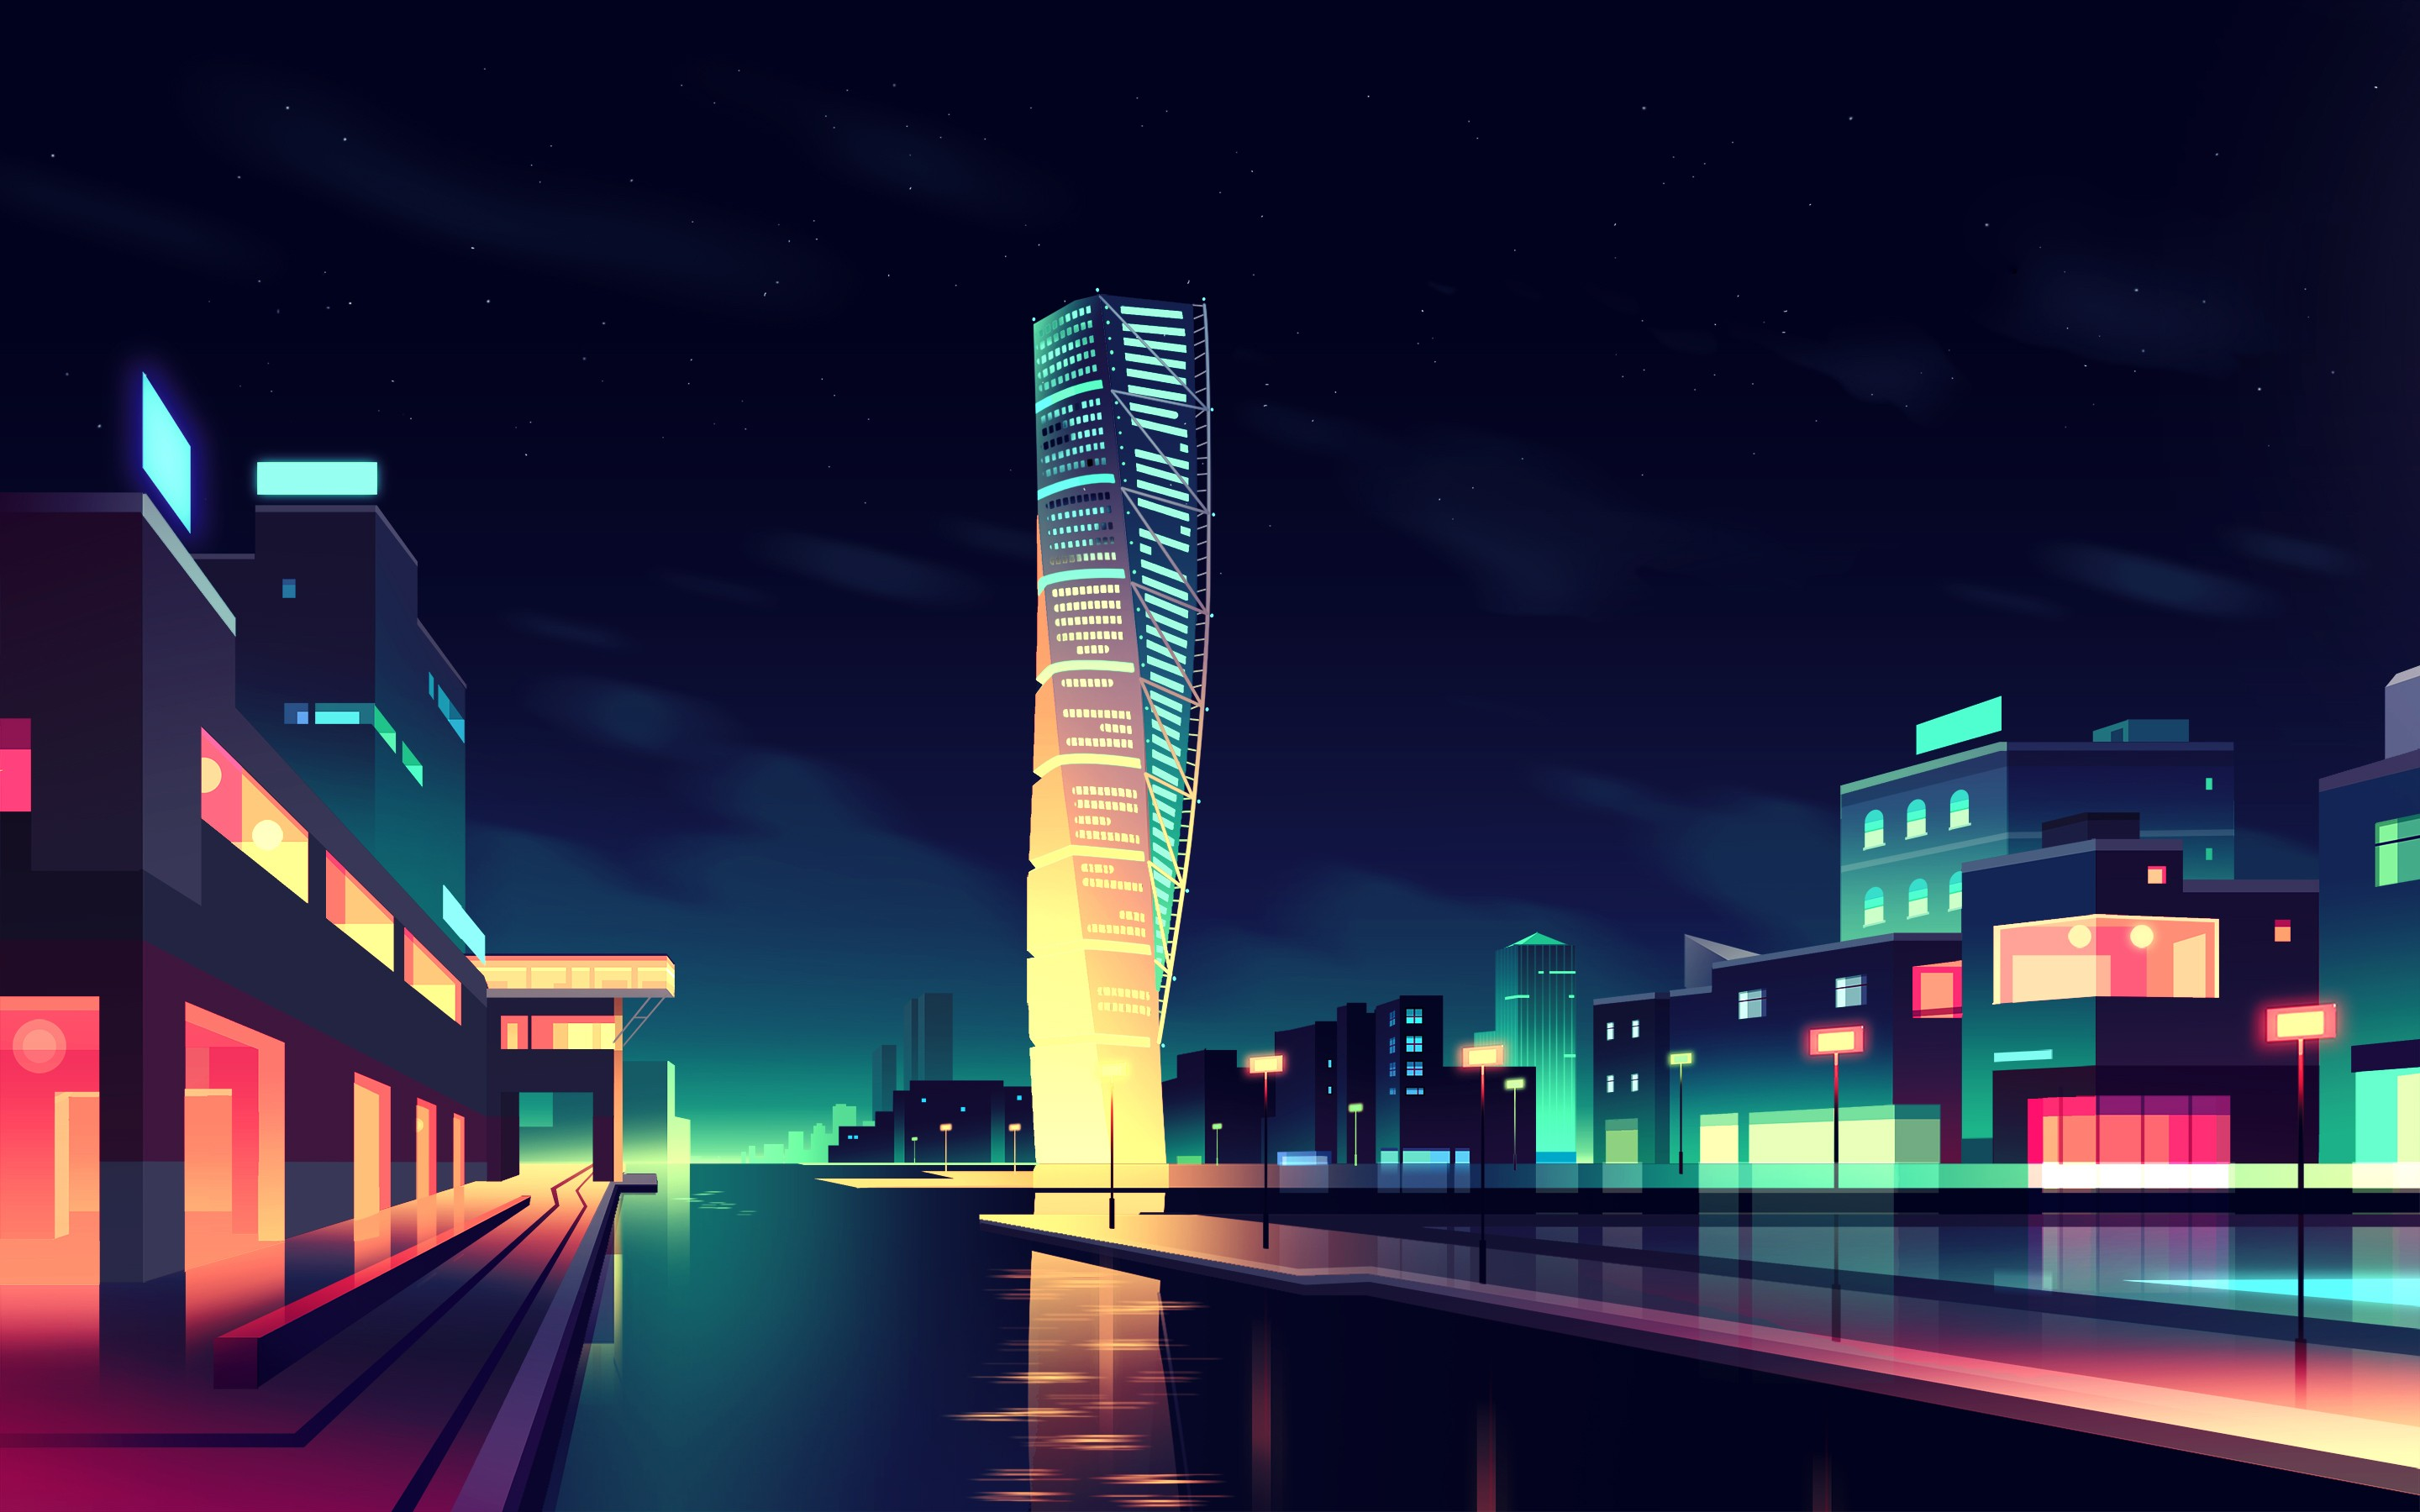 Street Light At Night Painting Cityscape Night Lights Building Reflection Digital